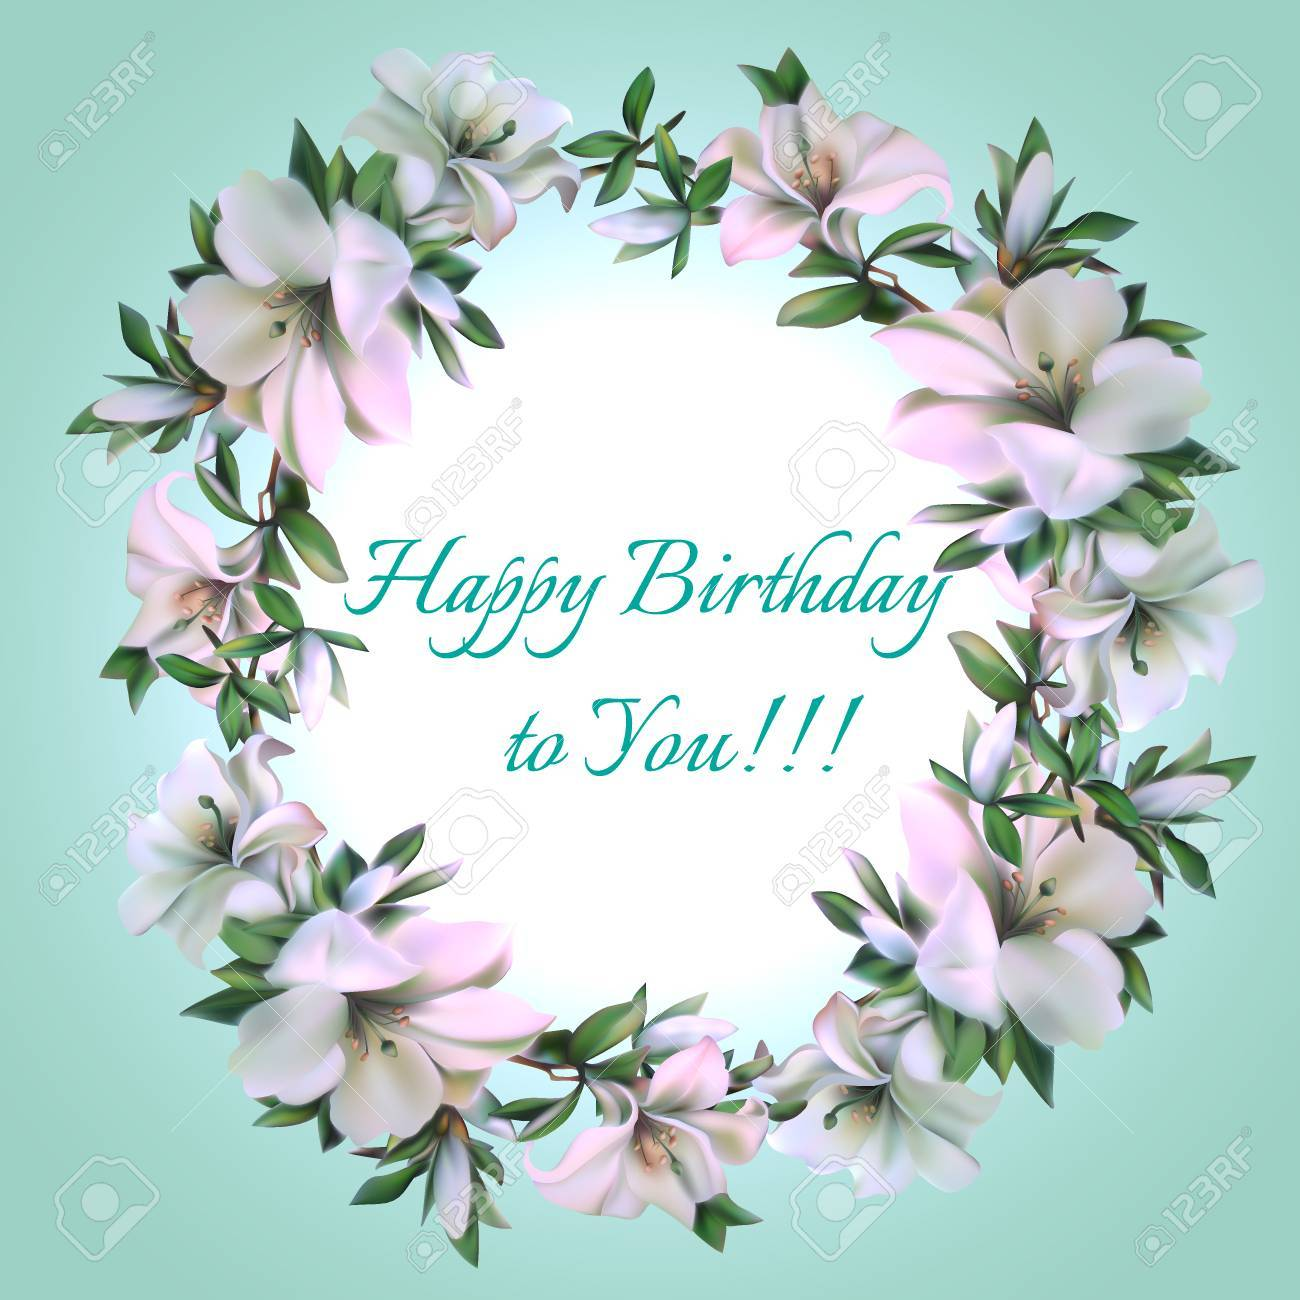 Vintage Frame Of Flowers With Text Happy Birthday To You Royalty Free Cliparts Vectors And Stock Illustration Image 52070313